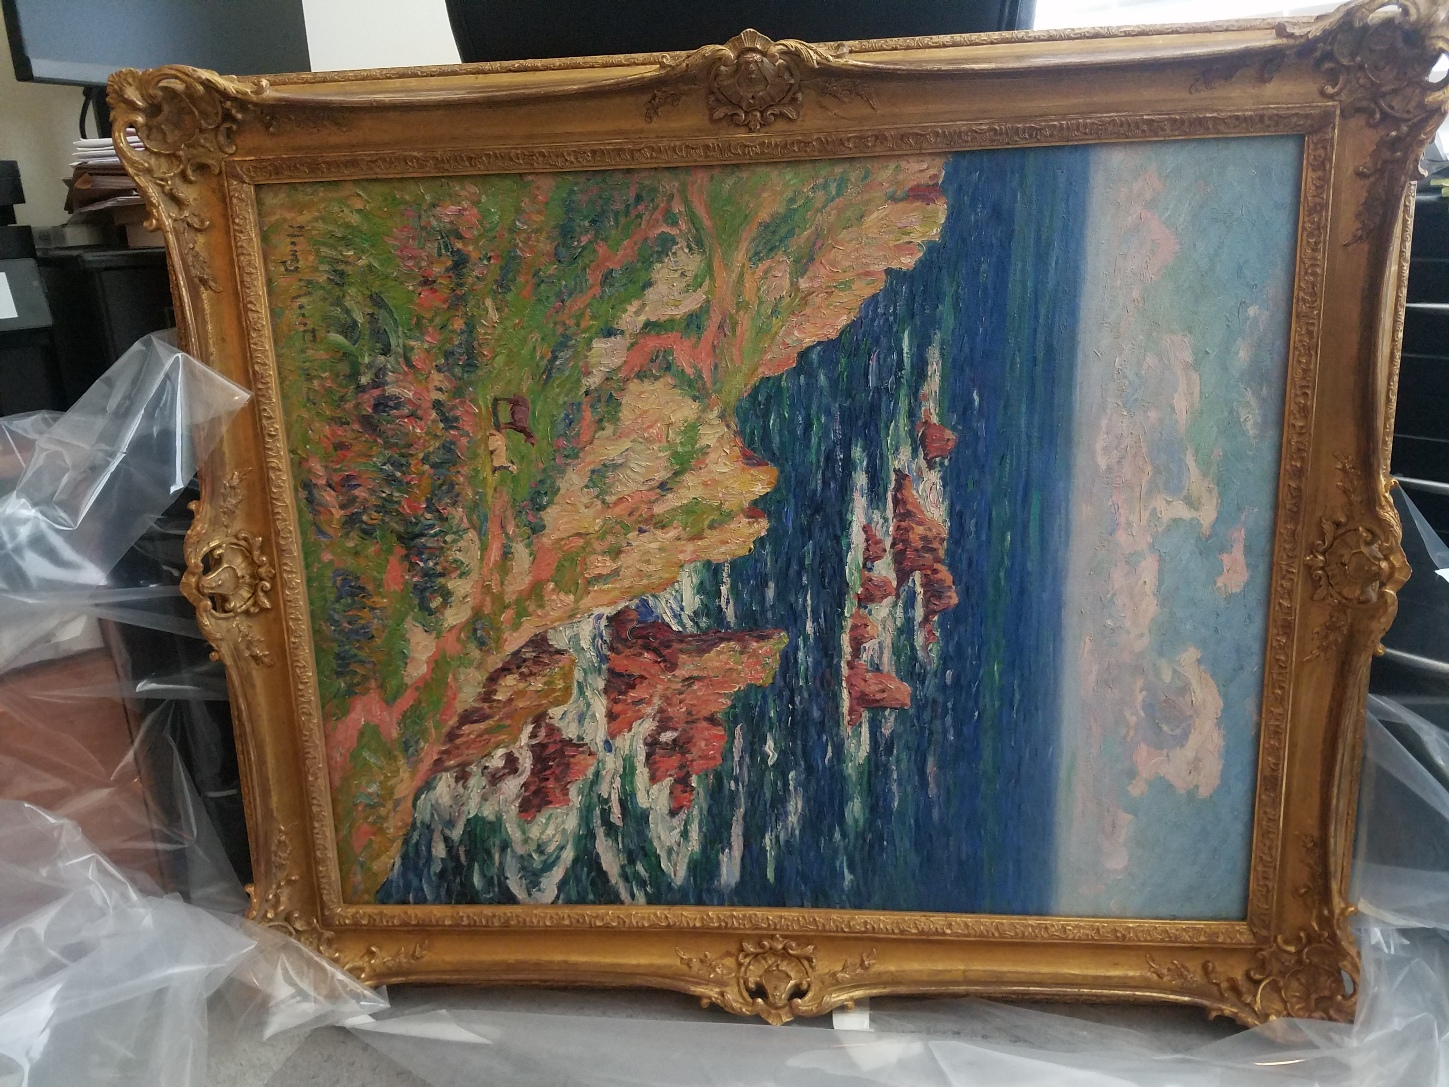 Auction Pickup Service from Fine Art Shippers